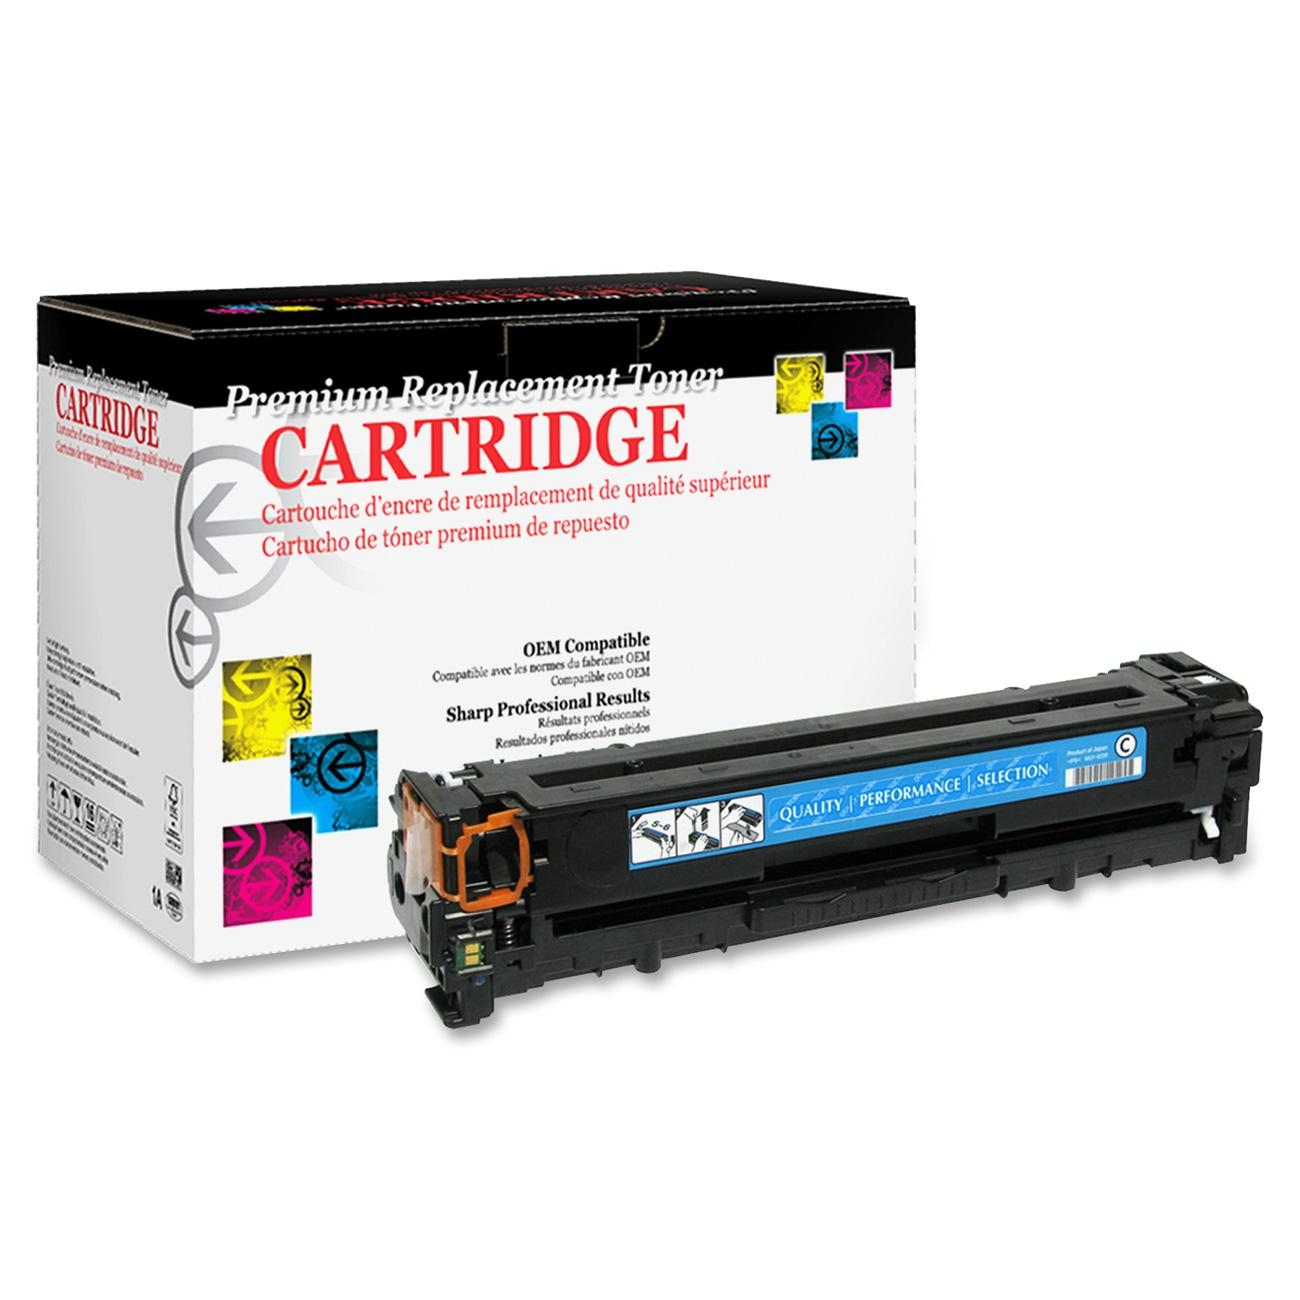 West Point Products Toner Cartridge - Replacement For Hp [cb541a] - Cyan - Laser - 1400 Page - 1 Each (200123P)